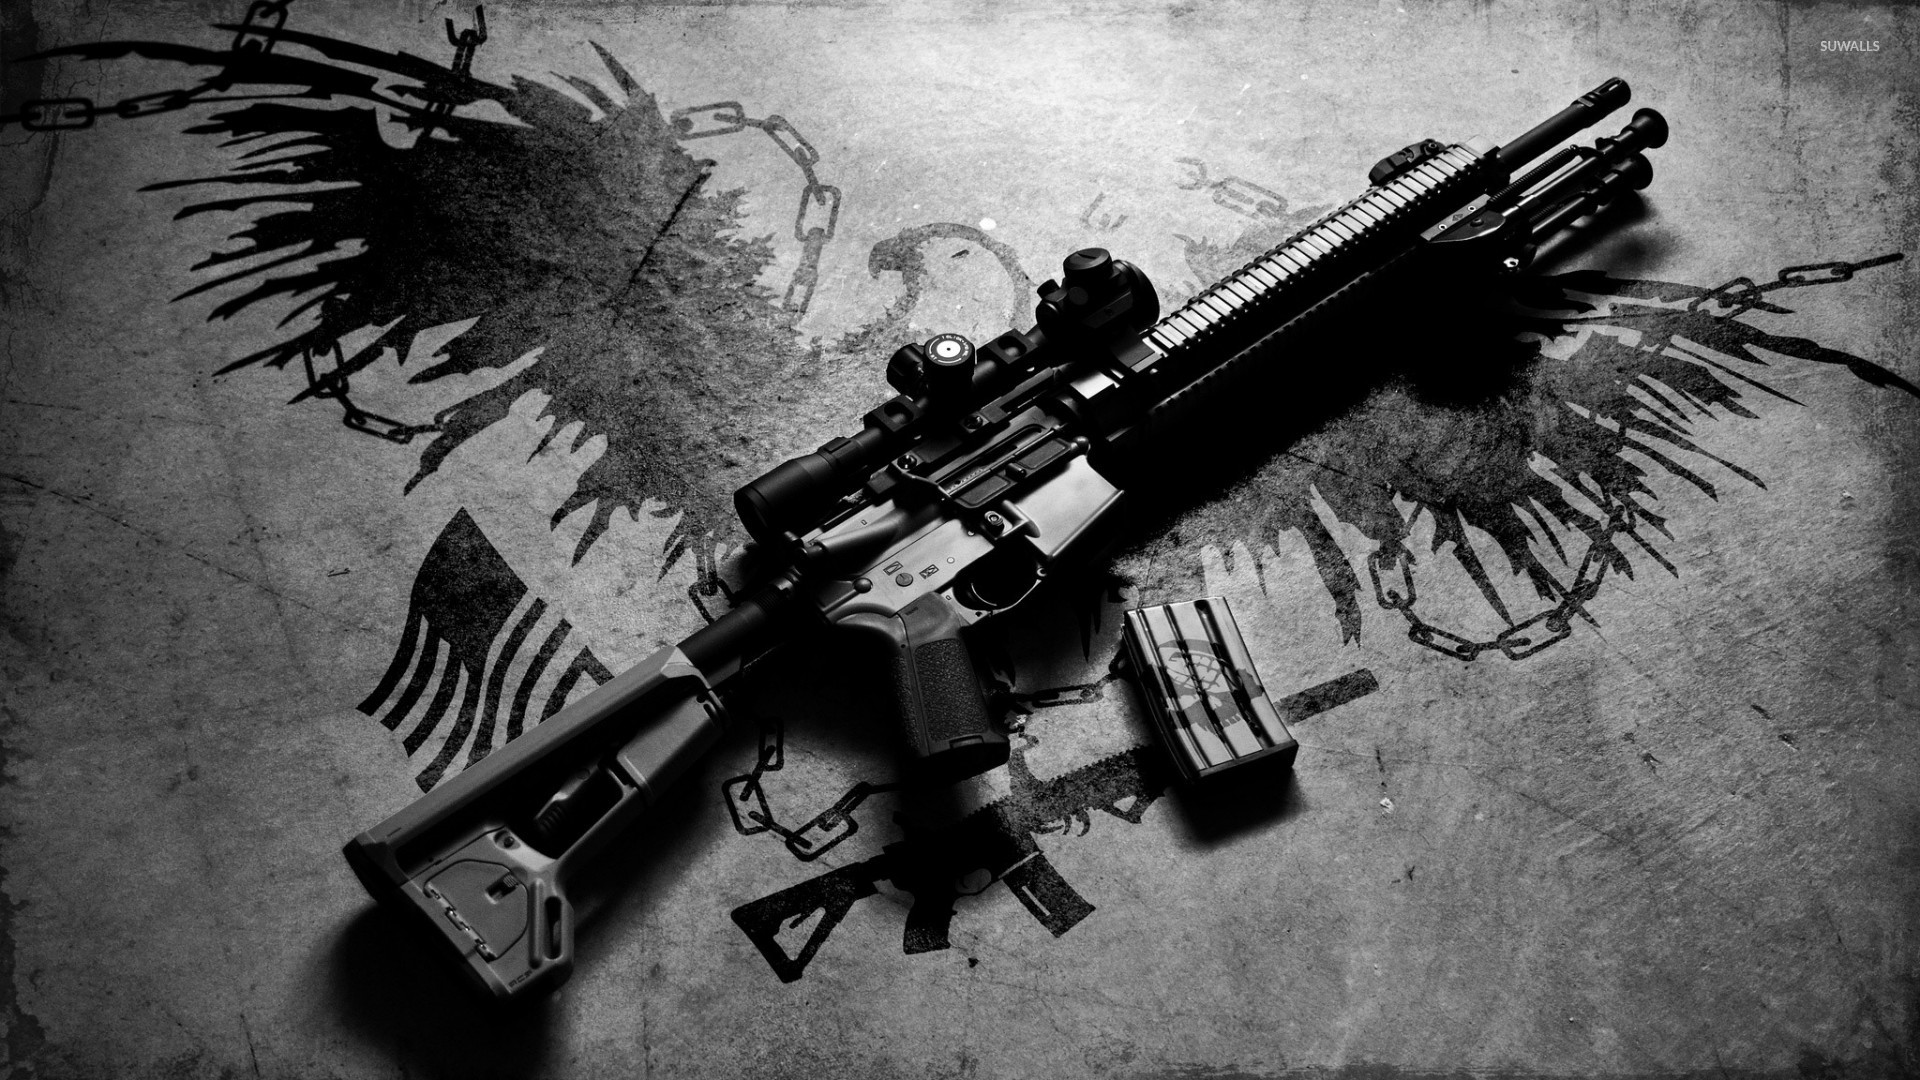 1920x1080 AR-15 rifle on the ground wallpaper